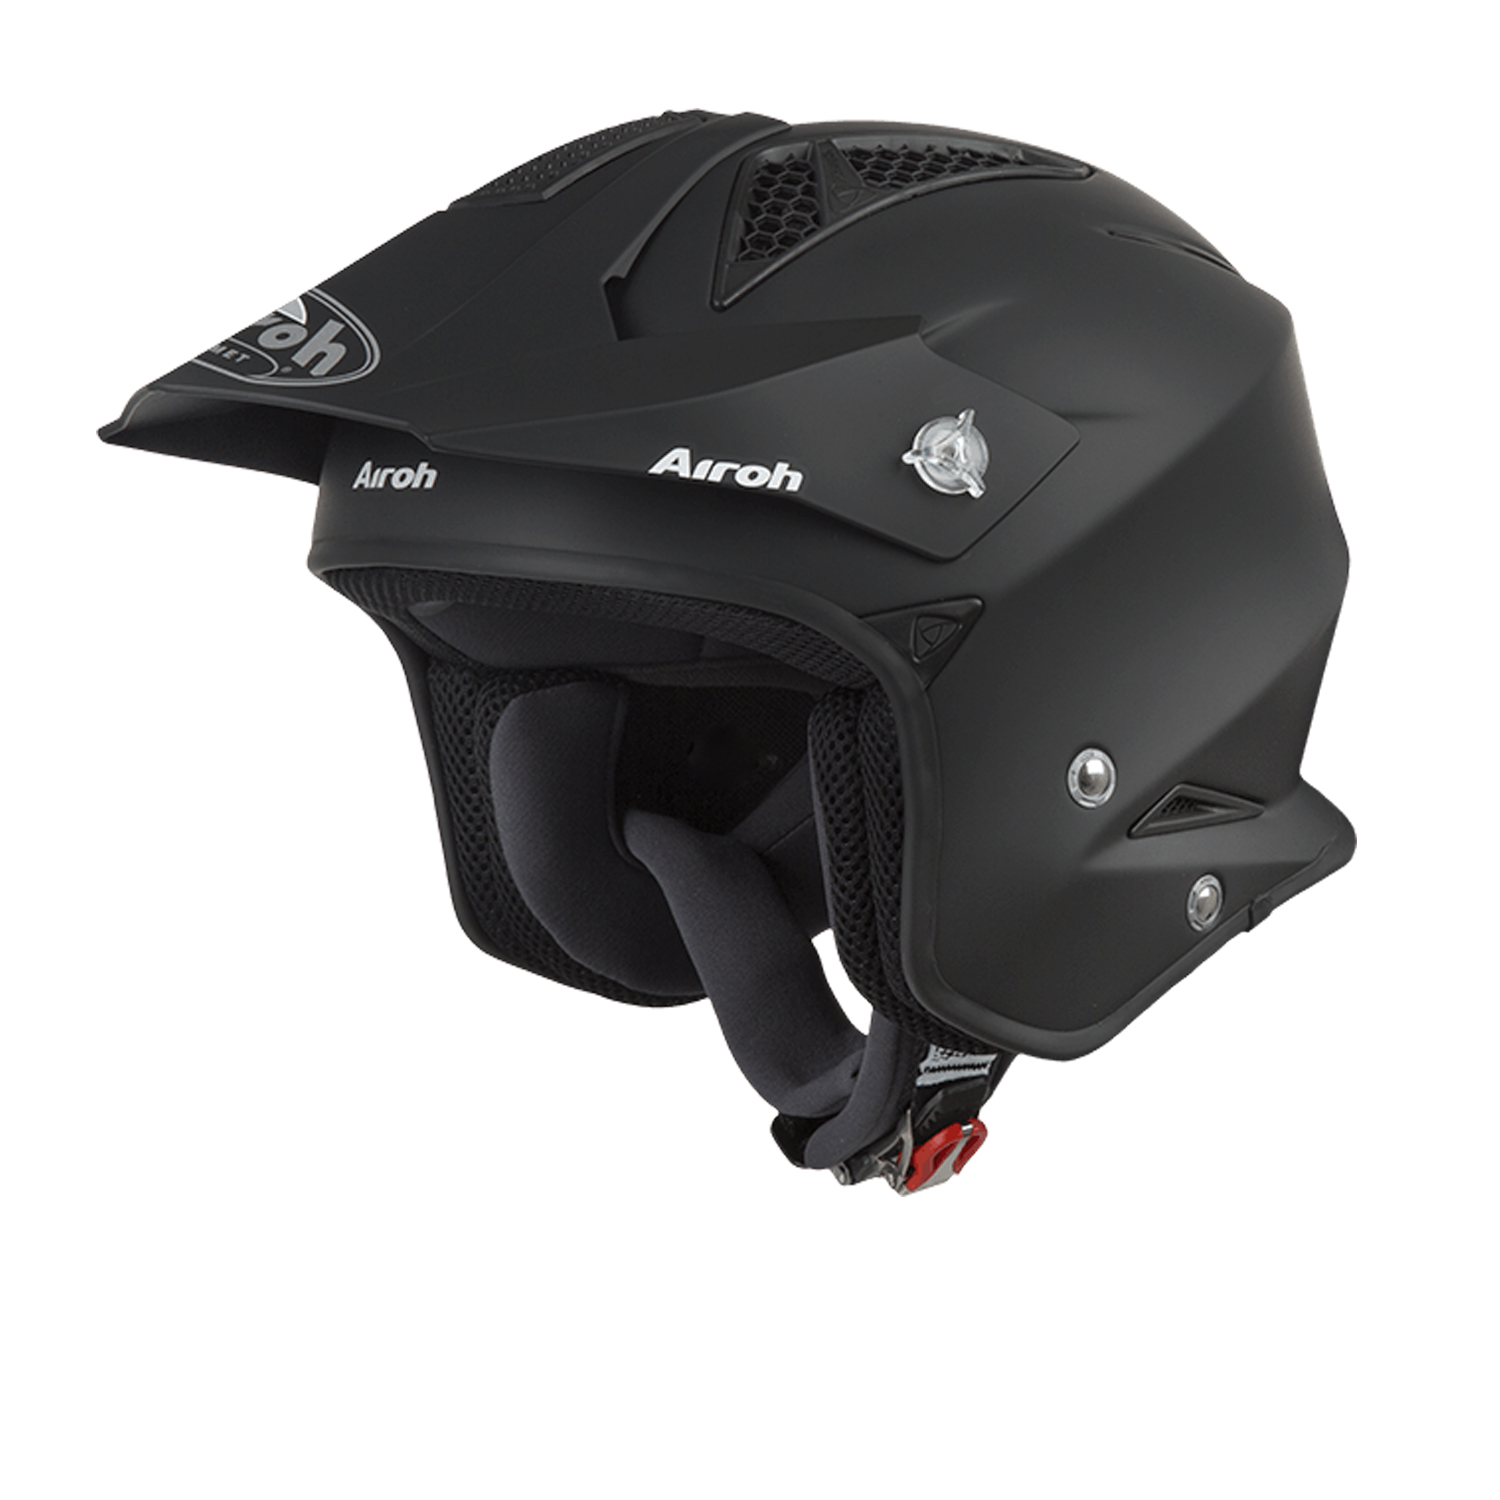 Casco helmet Airoh Urban Jet TRR S Color Black Matt moto scooter